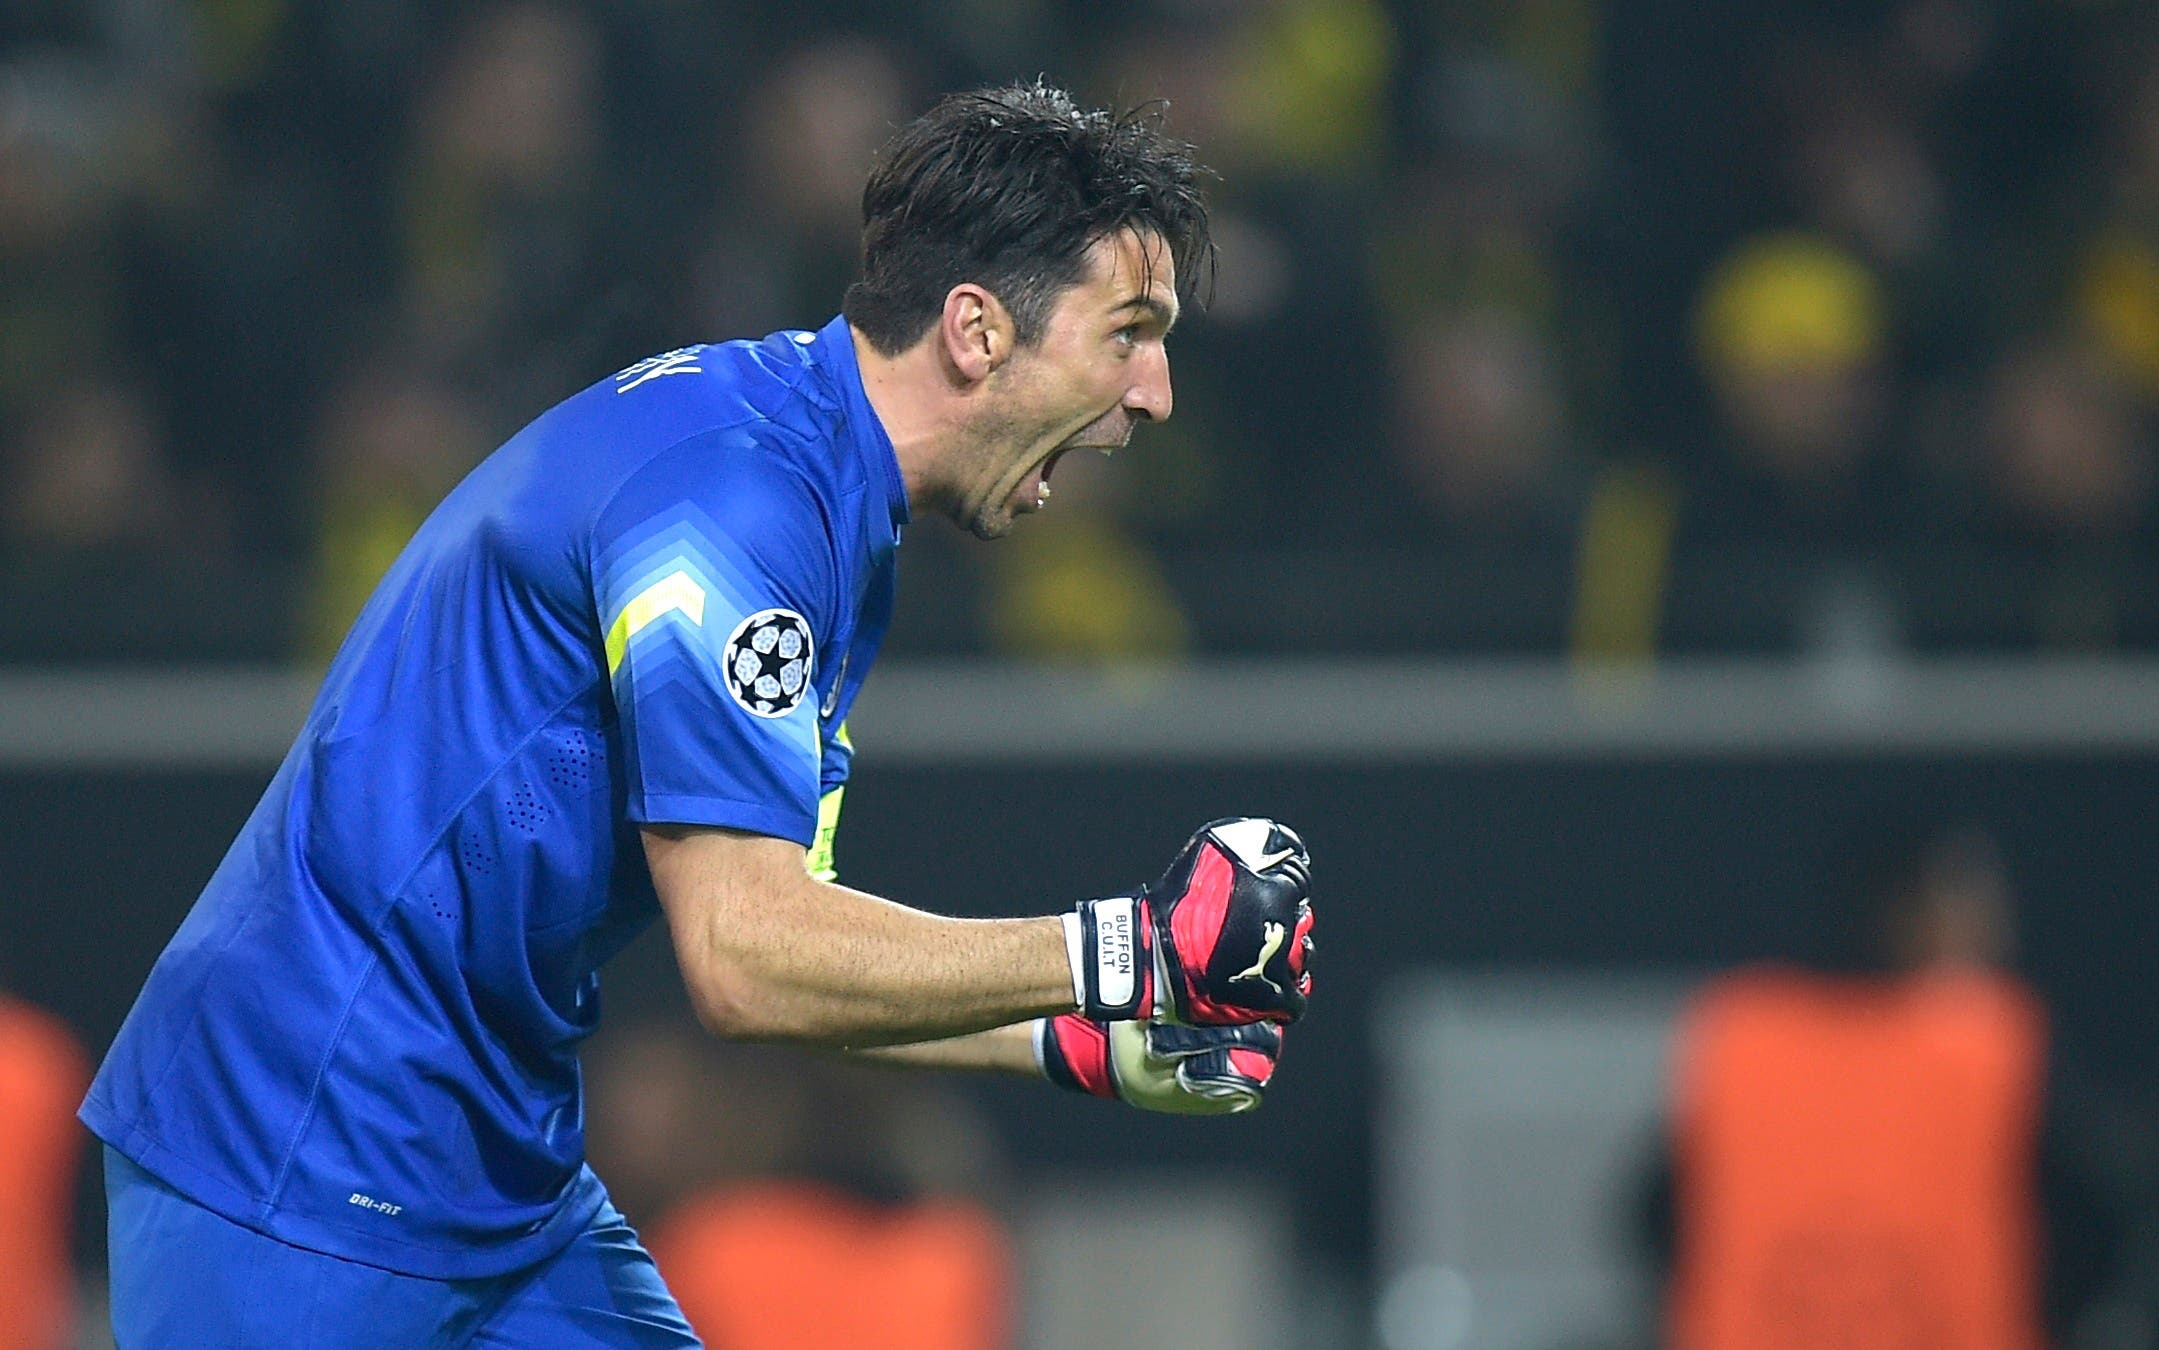 In this Wednesday, March 18, 2015 file photo Juventus goalkeeper Gianluigi Buffon celebrates after his team scored their second goal during the Champions League round of 16 second leg soccer match between Borussia Dortmund and Juventus Turin in Dortmund, Germany. (AP Photo/Martin Meissner, File)